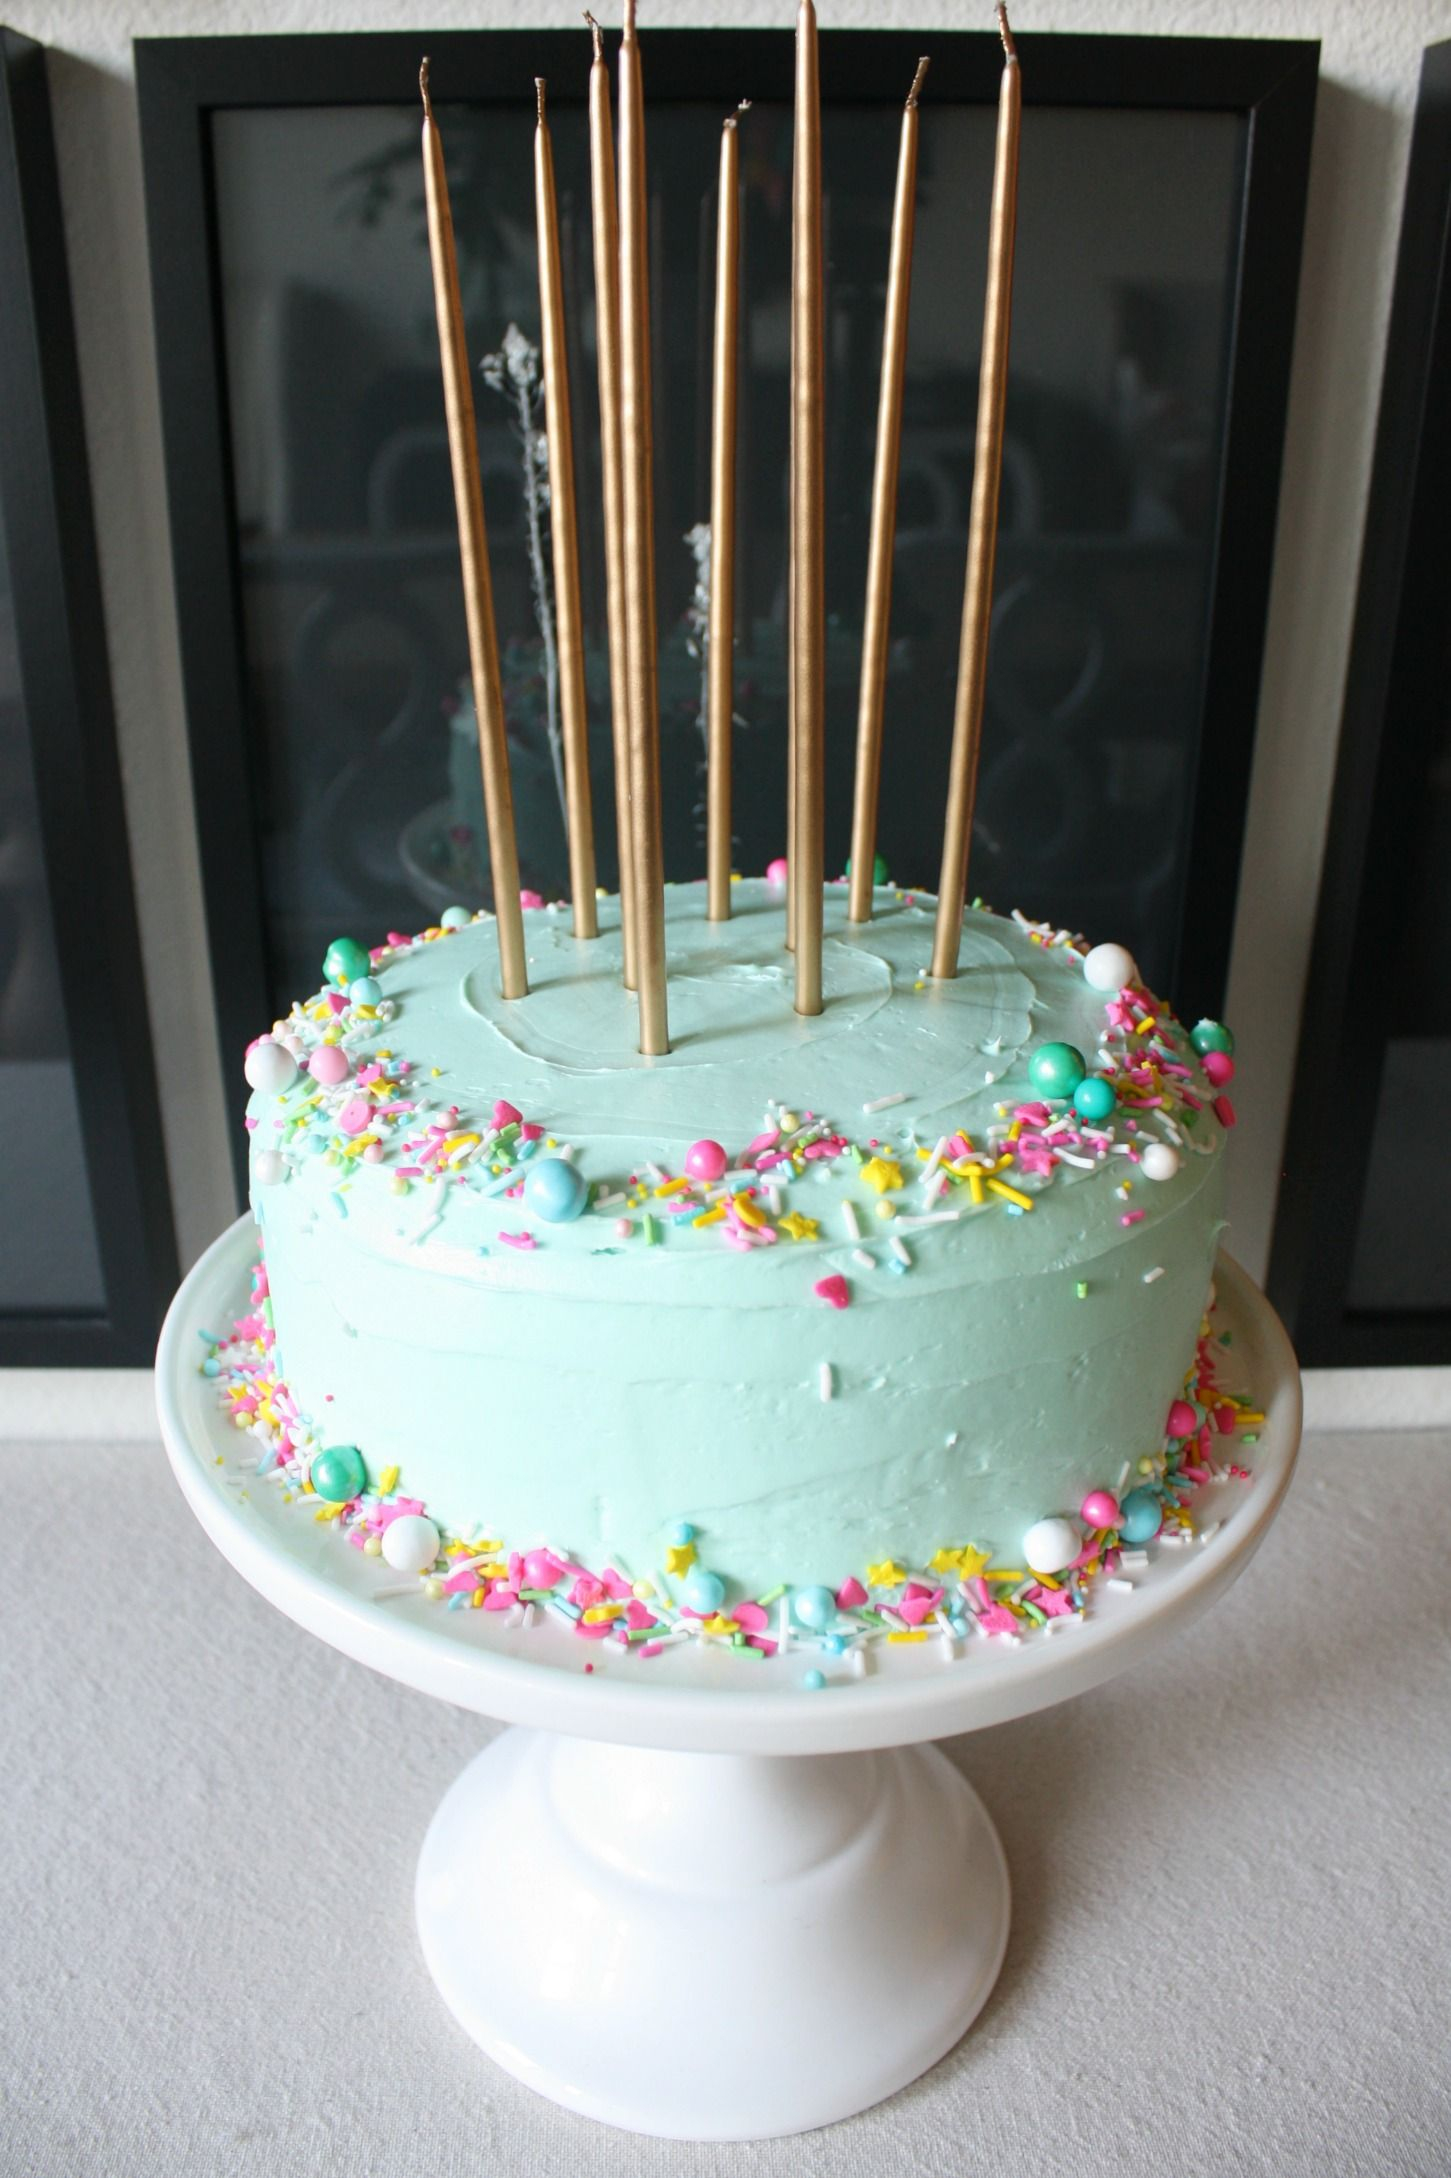 2178 In 25 Great Photo Of Simple Birthday Cake Ideas